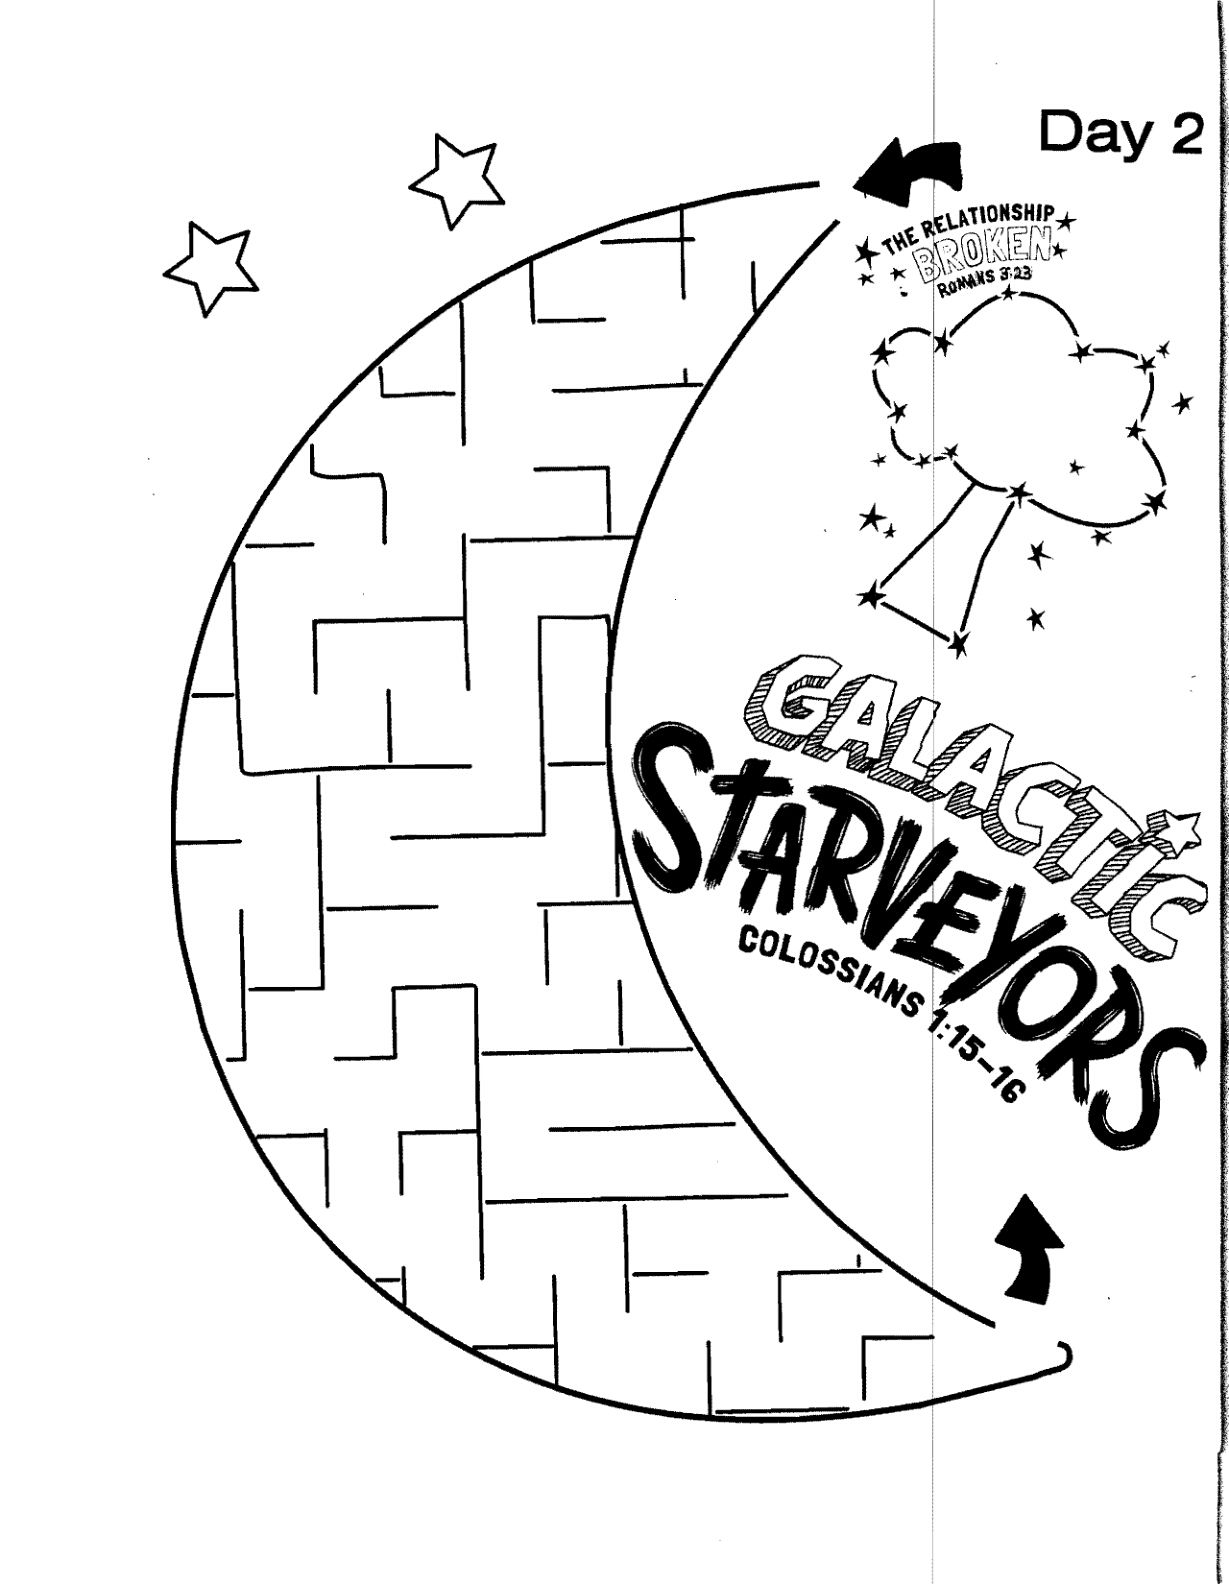 1229x1584 Galactic Starveyors Coloring Sheet Vbs Day